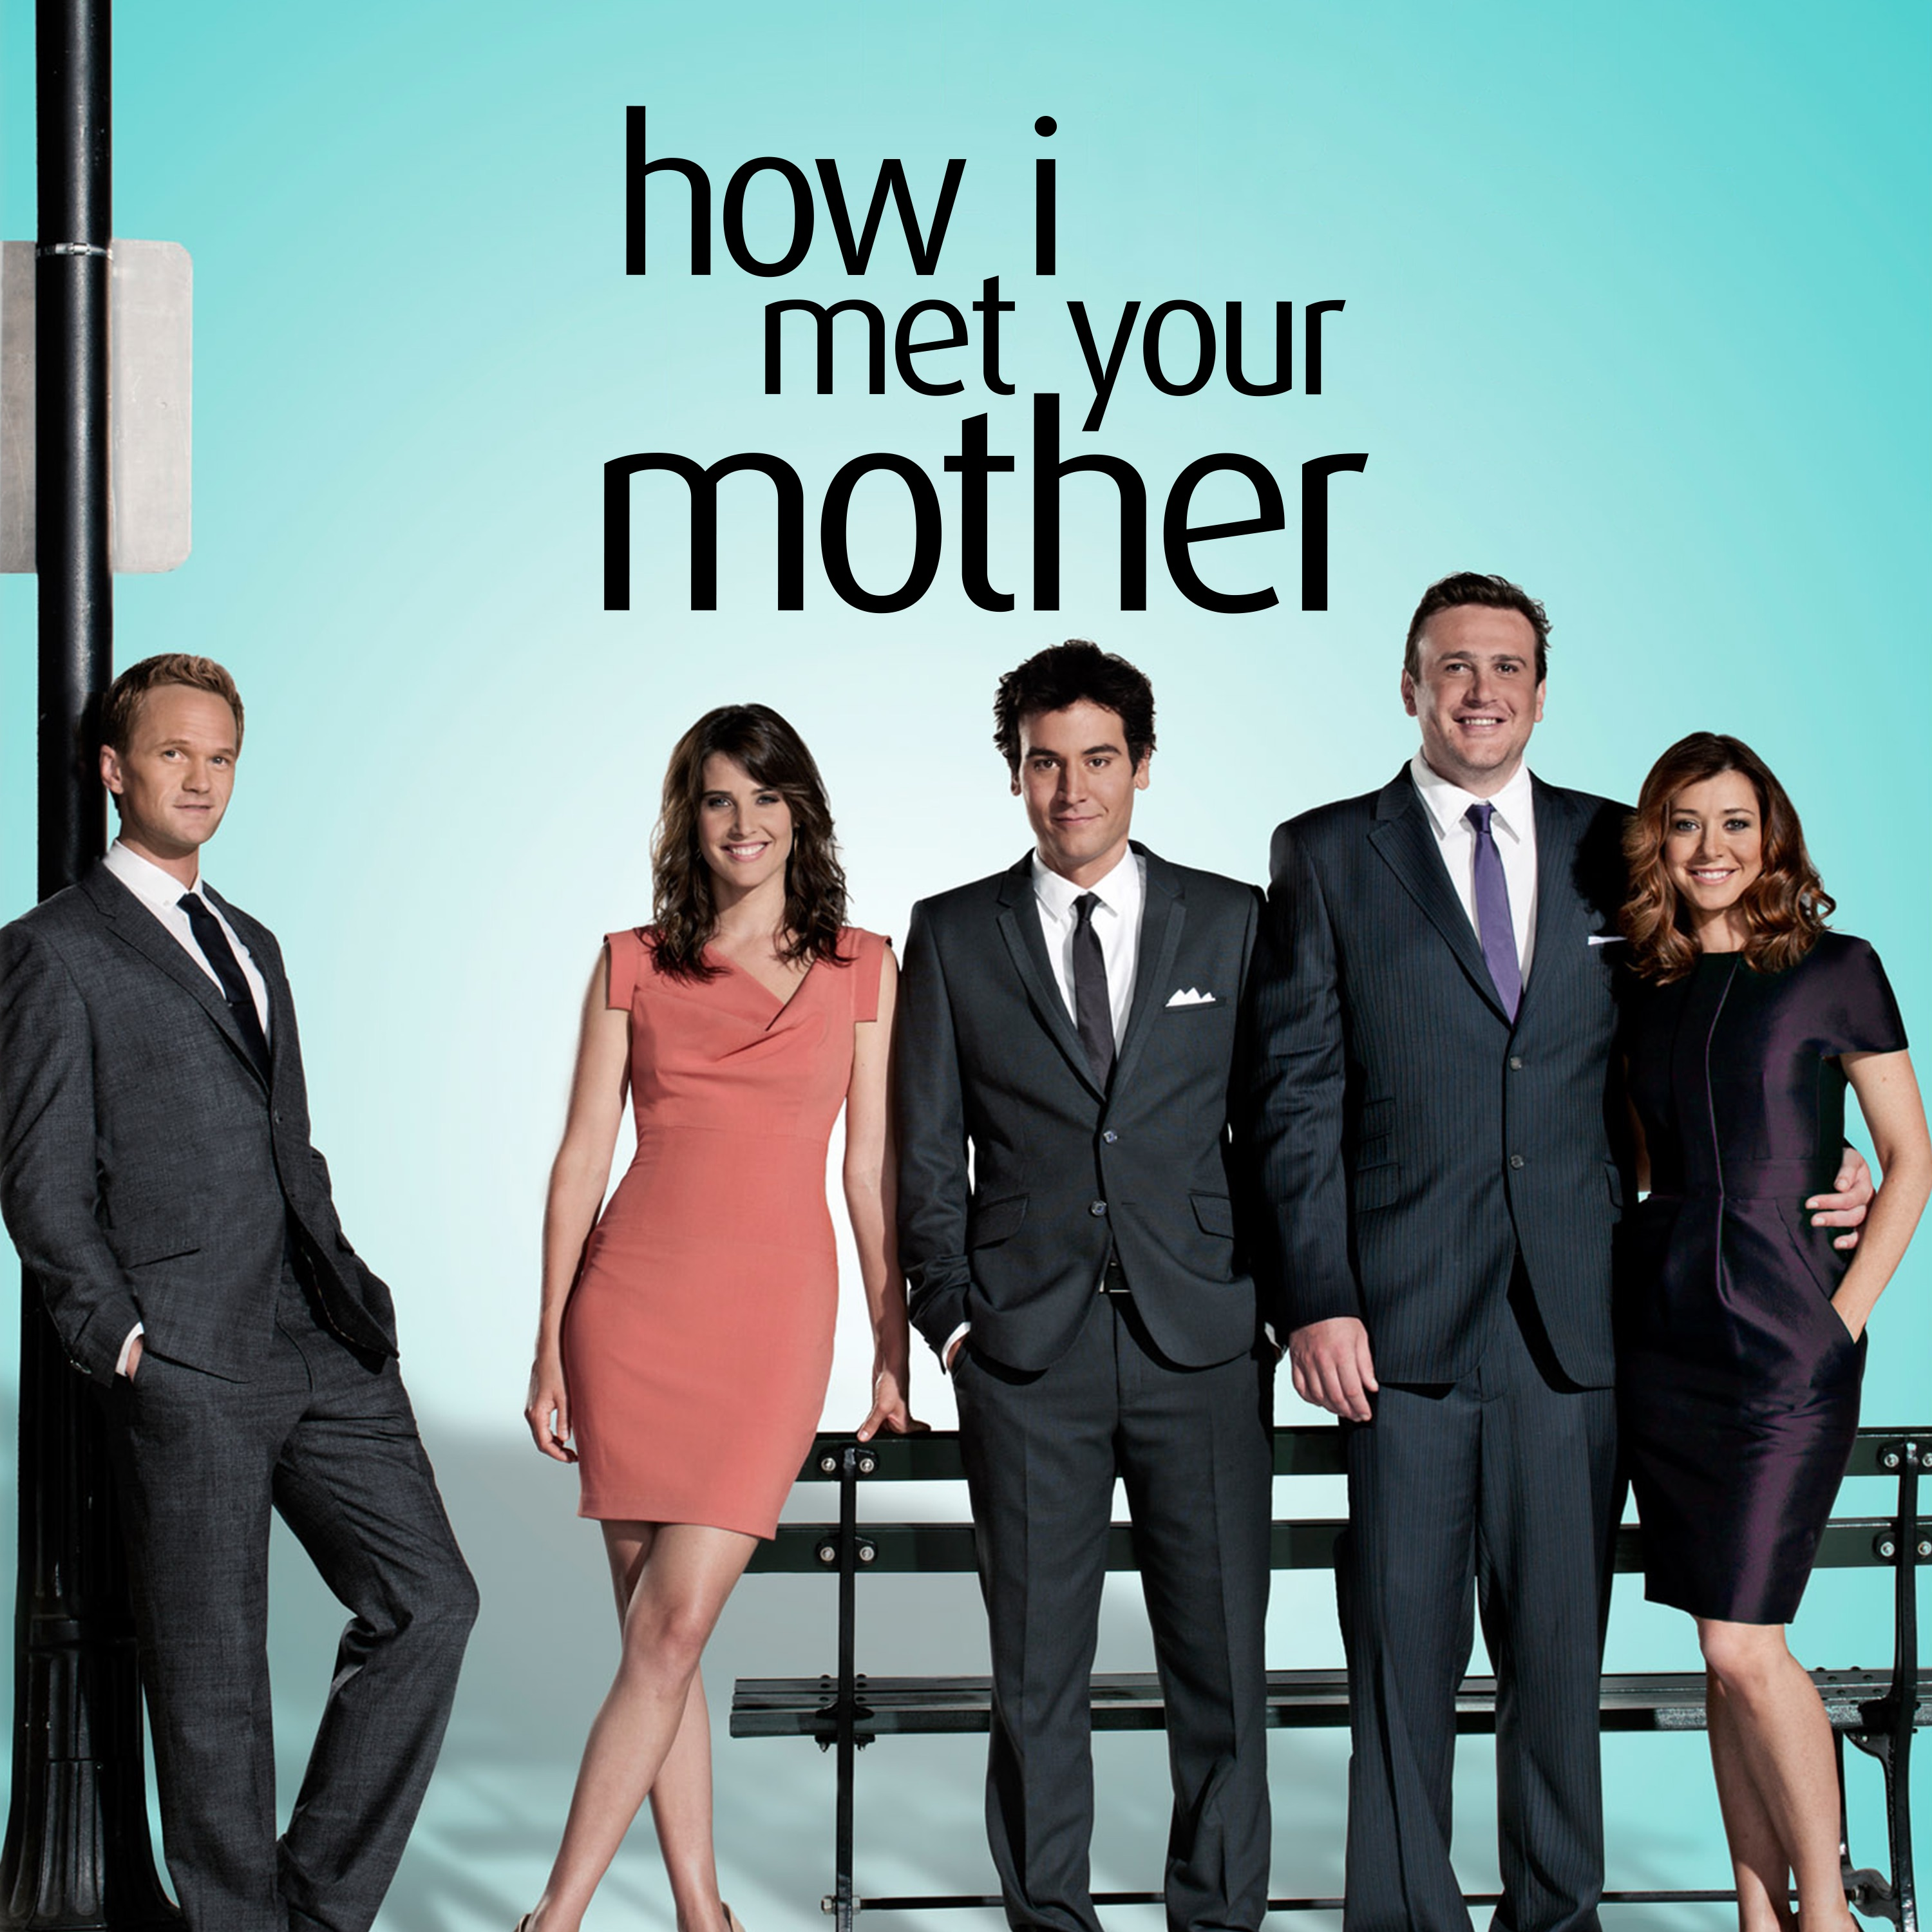 how i met your mother bs